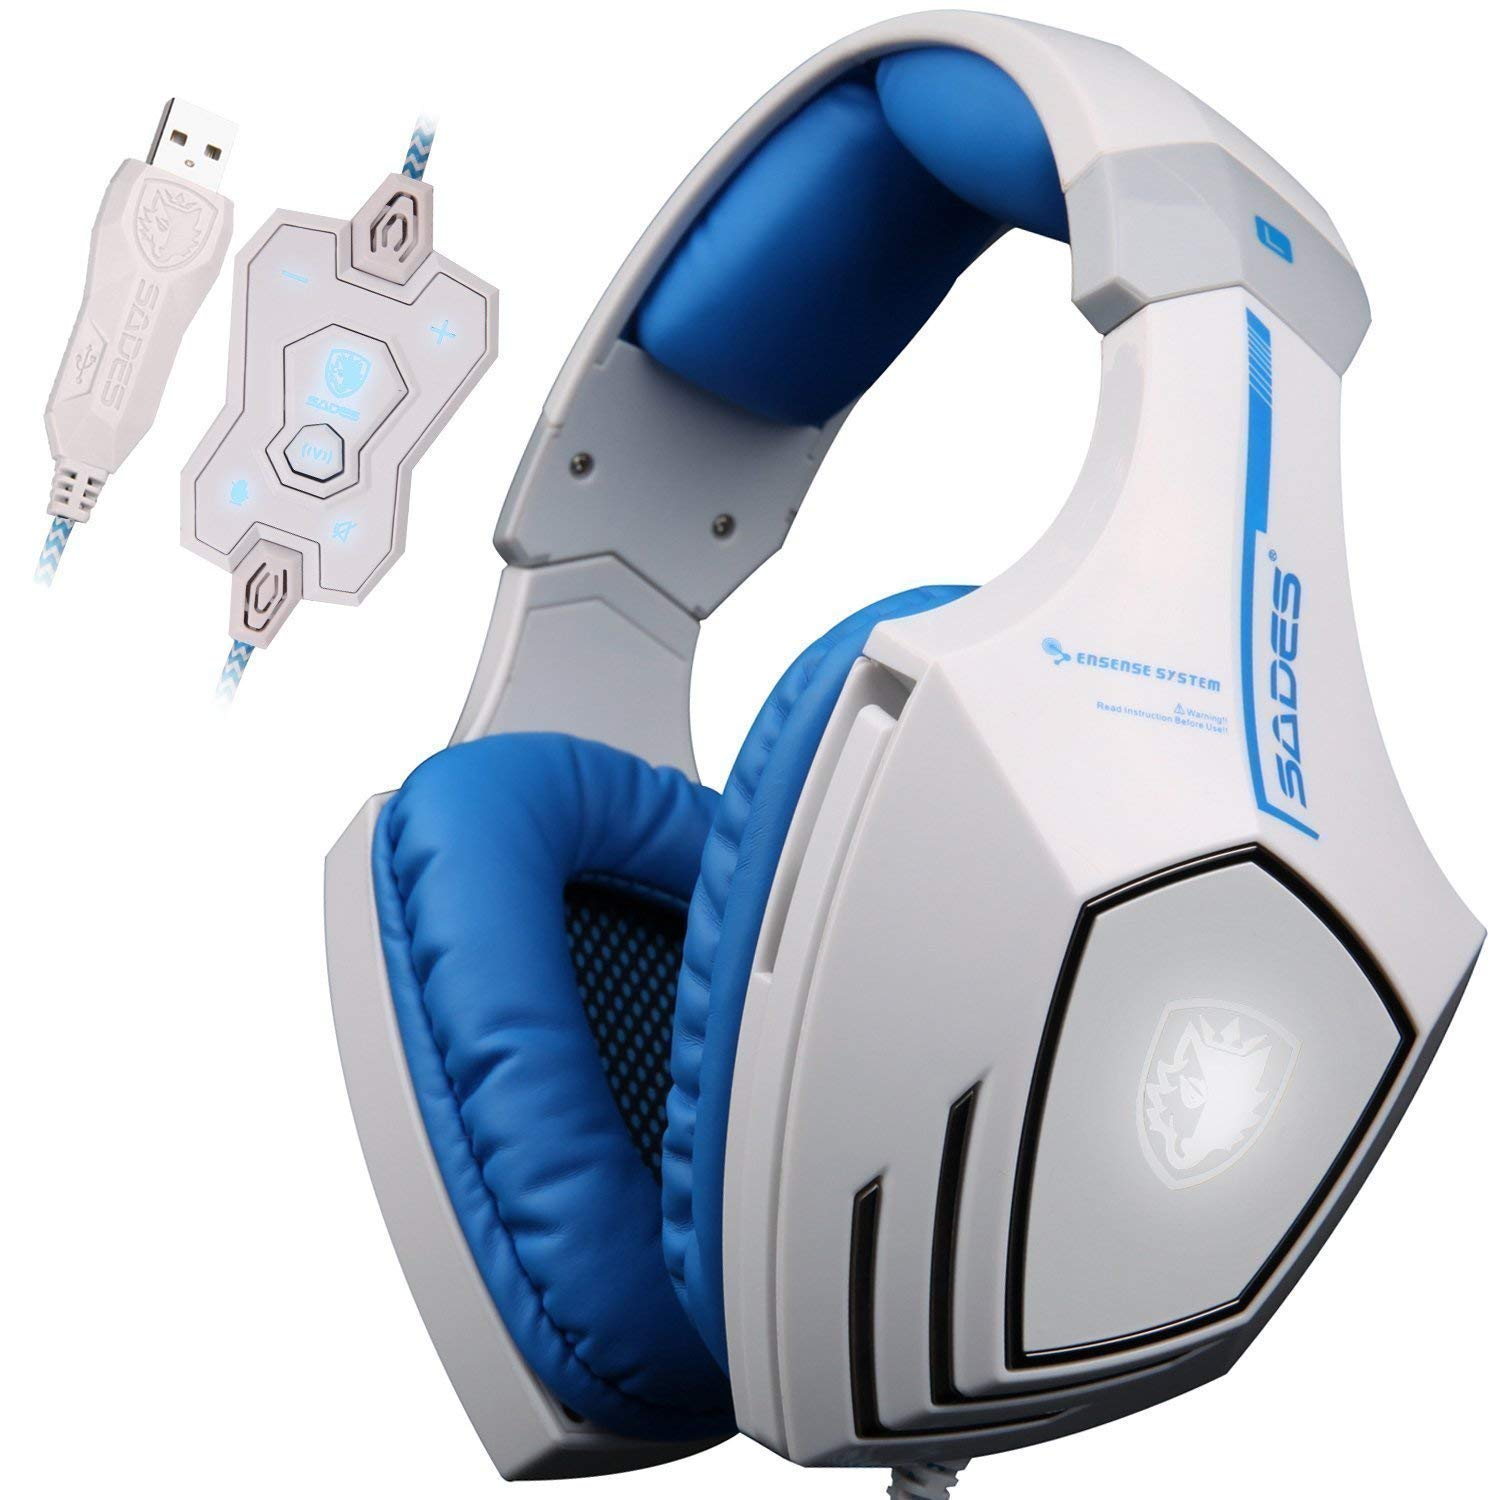 PC Gaming Headphone Headset A60 7.1 USB Surround Sound Stereo Over-Ear with Mic Bass,Vibration,Noise-Canceling,Volume Control sades a60 pc gamer headset usb 7 1 surround sound pro gaming headset vibration game headphones earphones with mic for computer